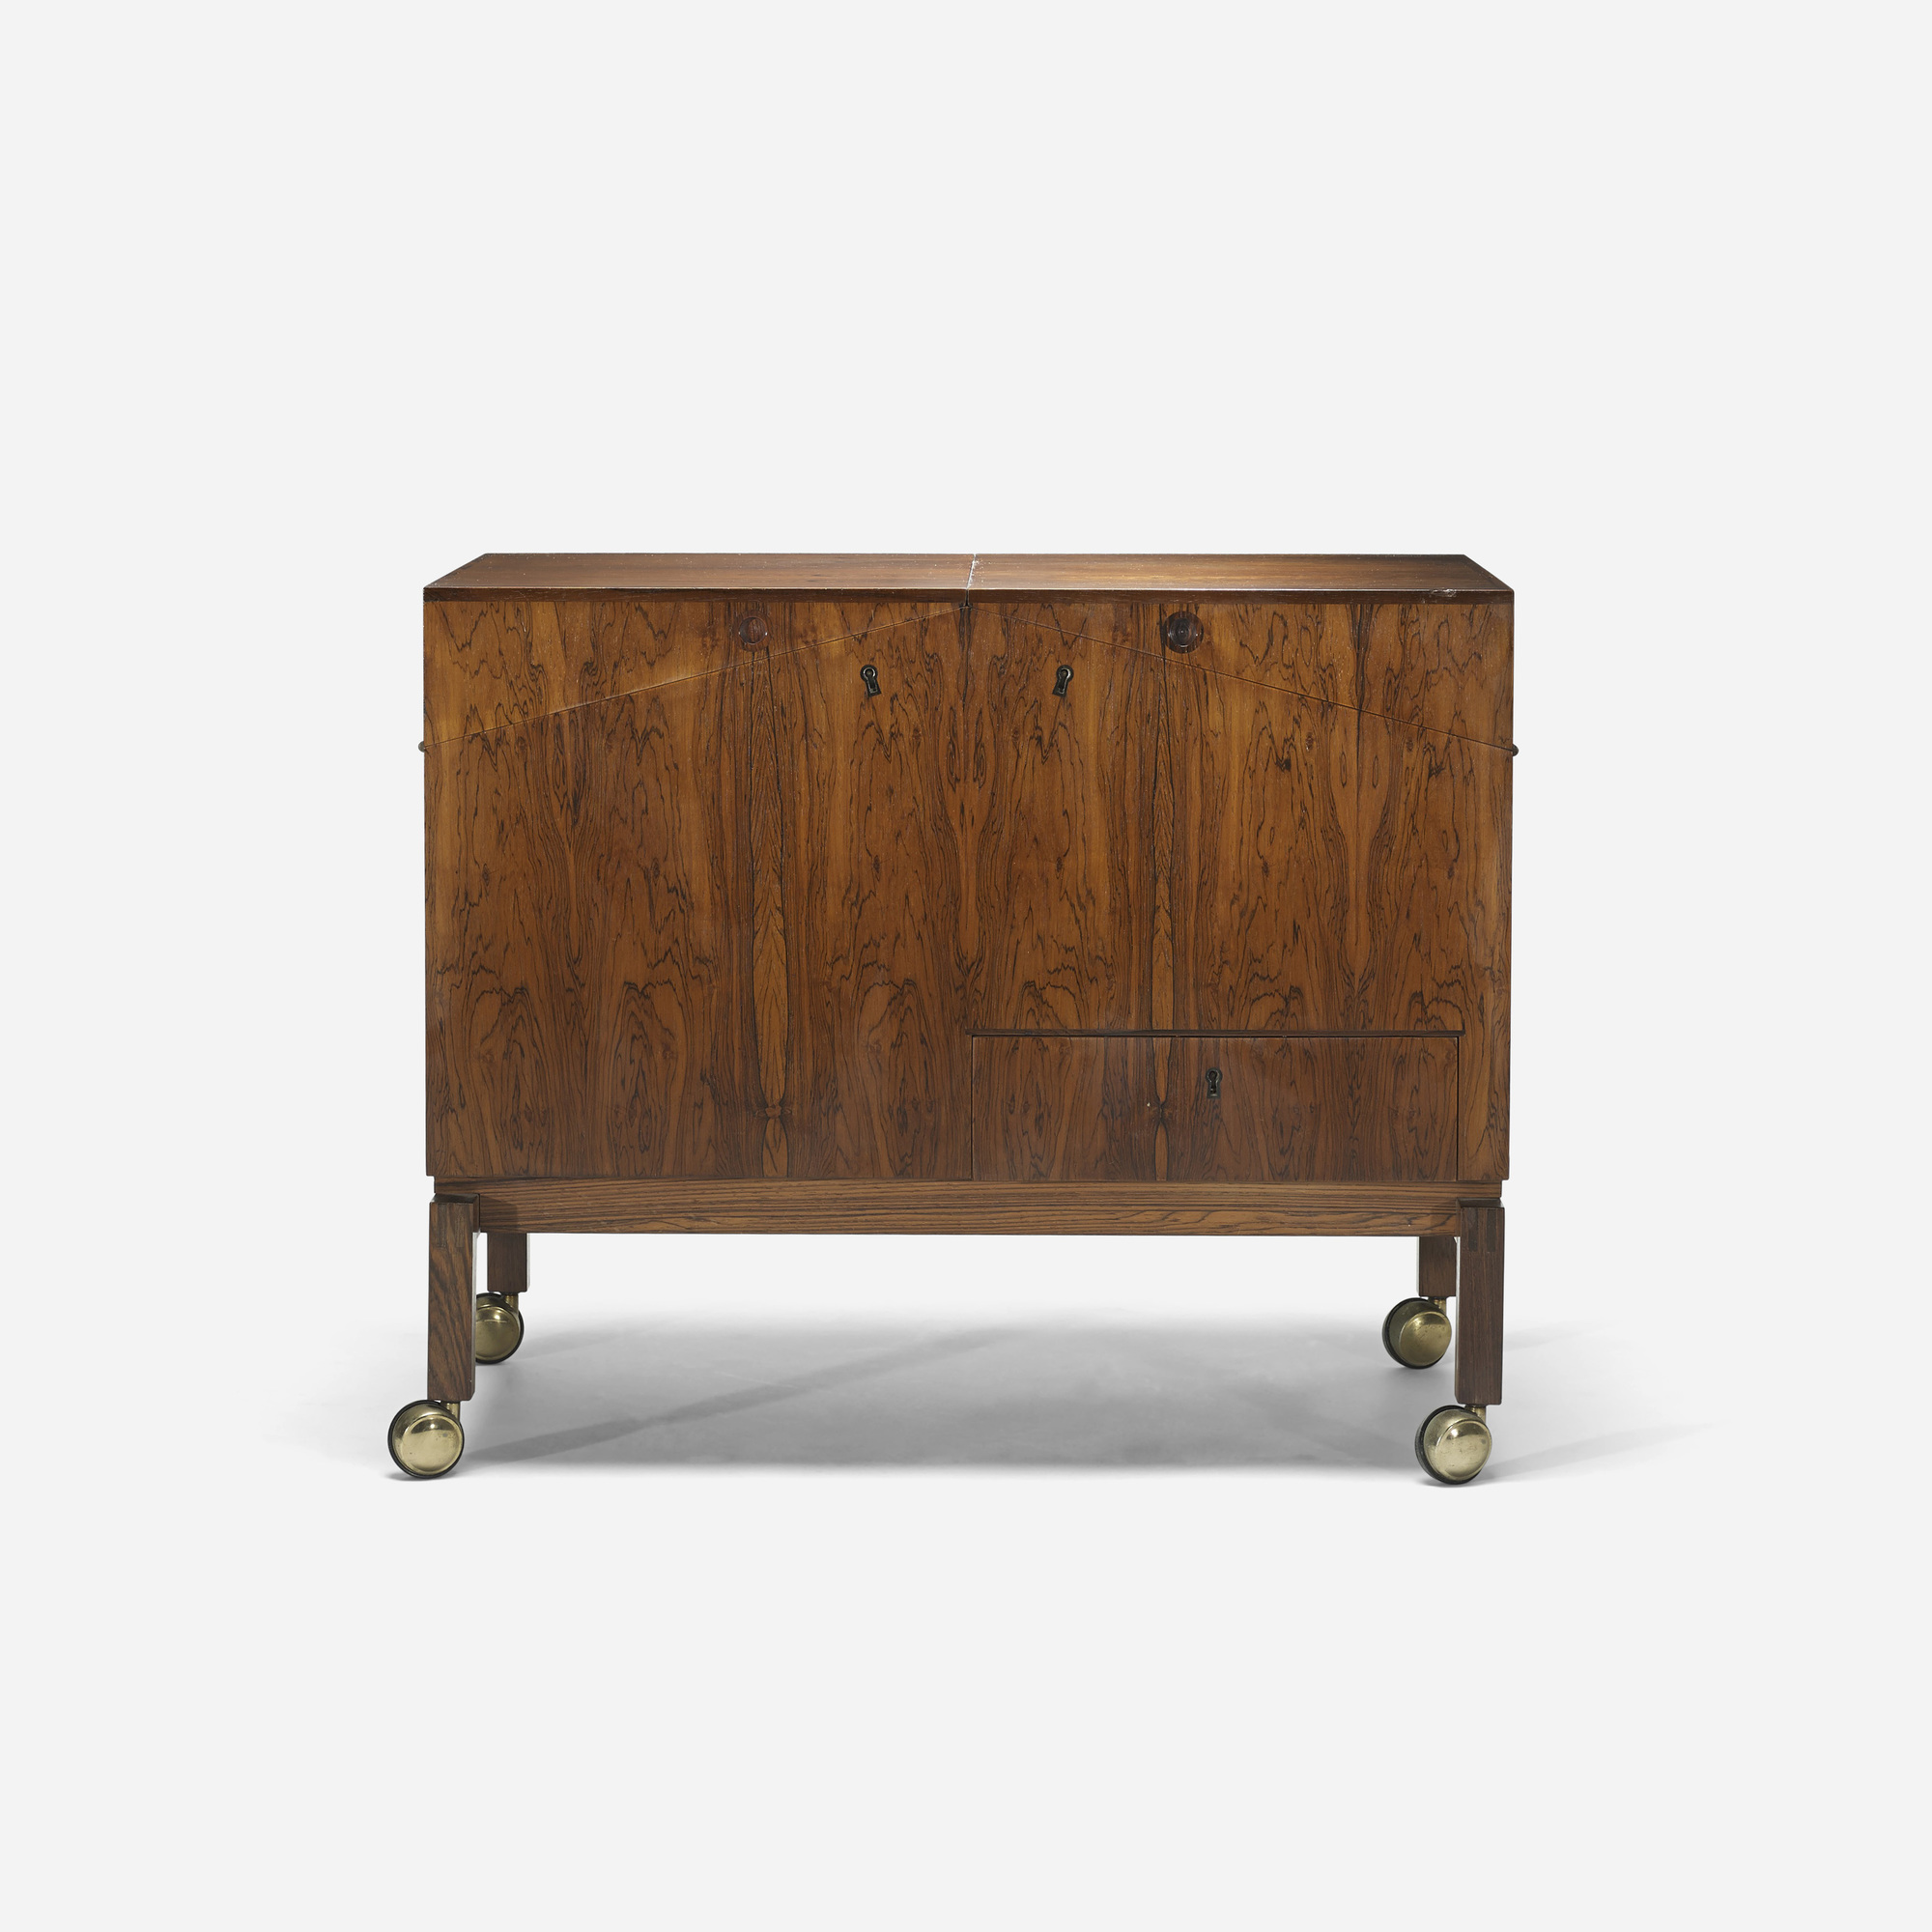 184: Leif Alring / bar cabinet (2 of 4)